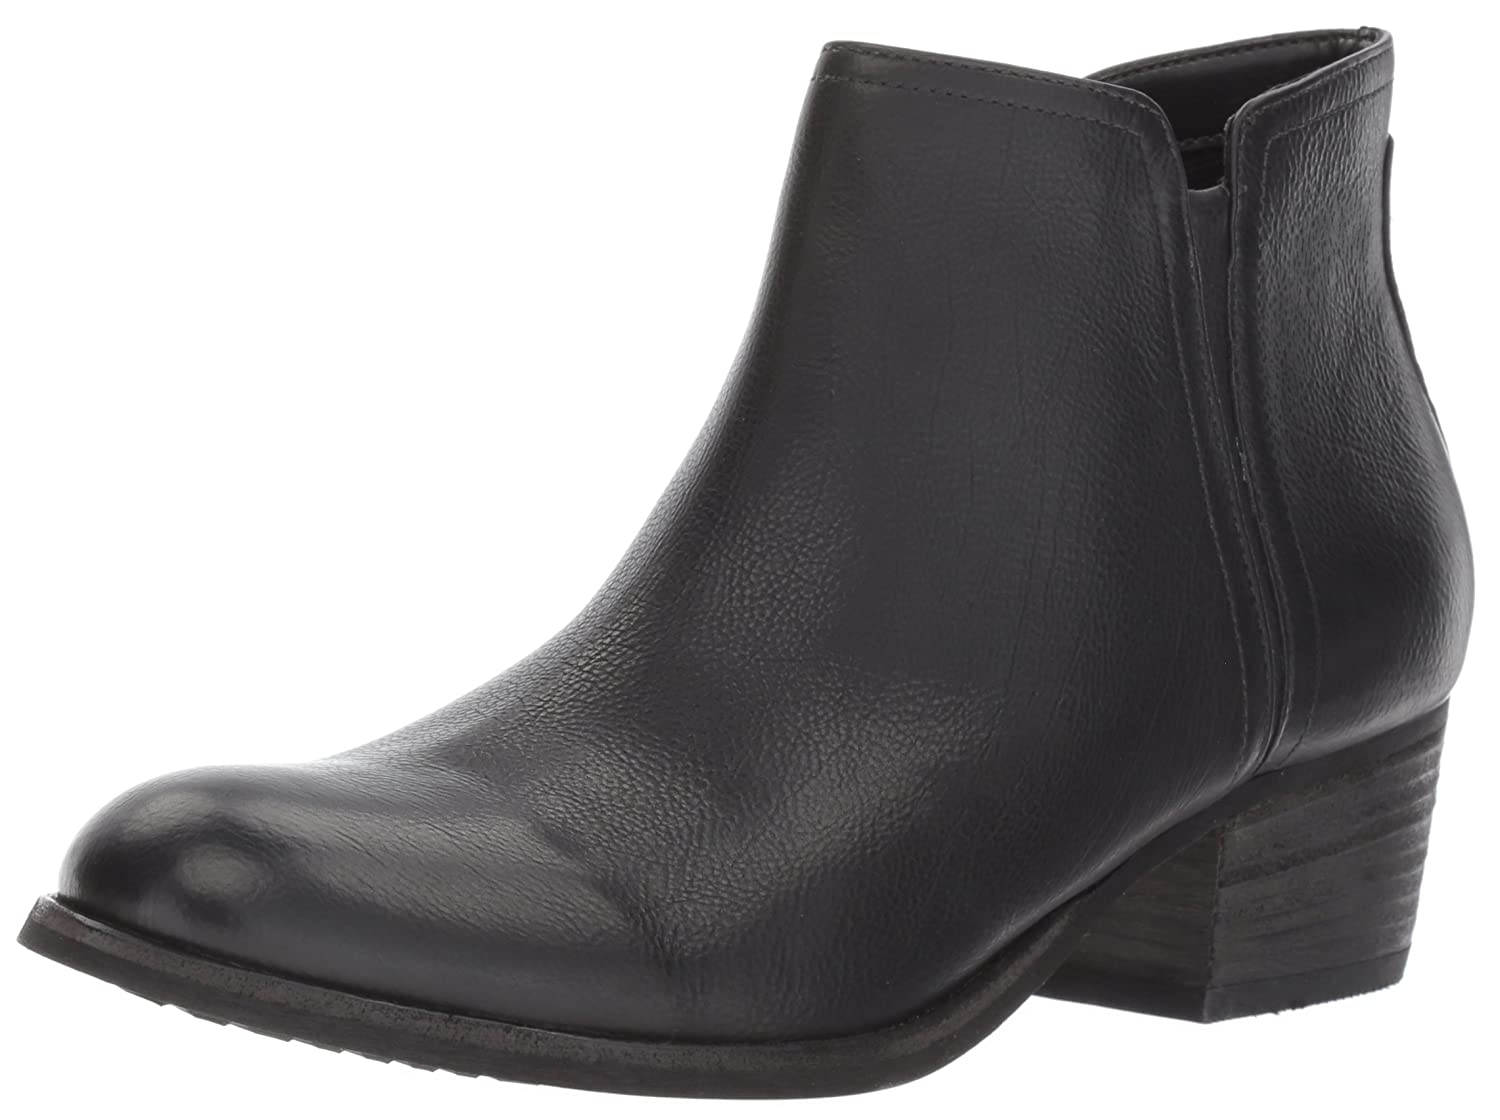 Black Leather Clarks Women's Maypearl Ramie Ankle Boot